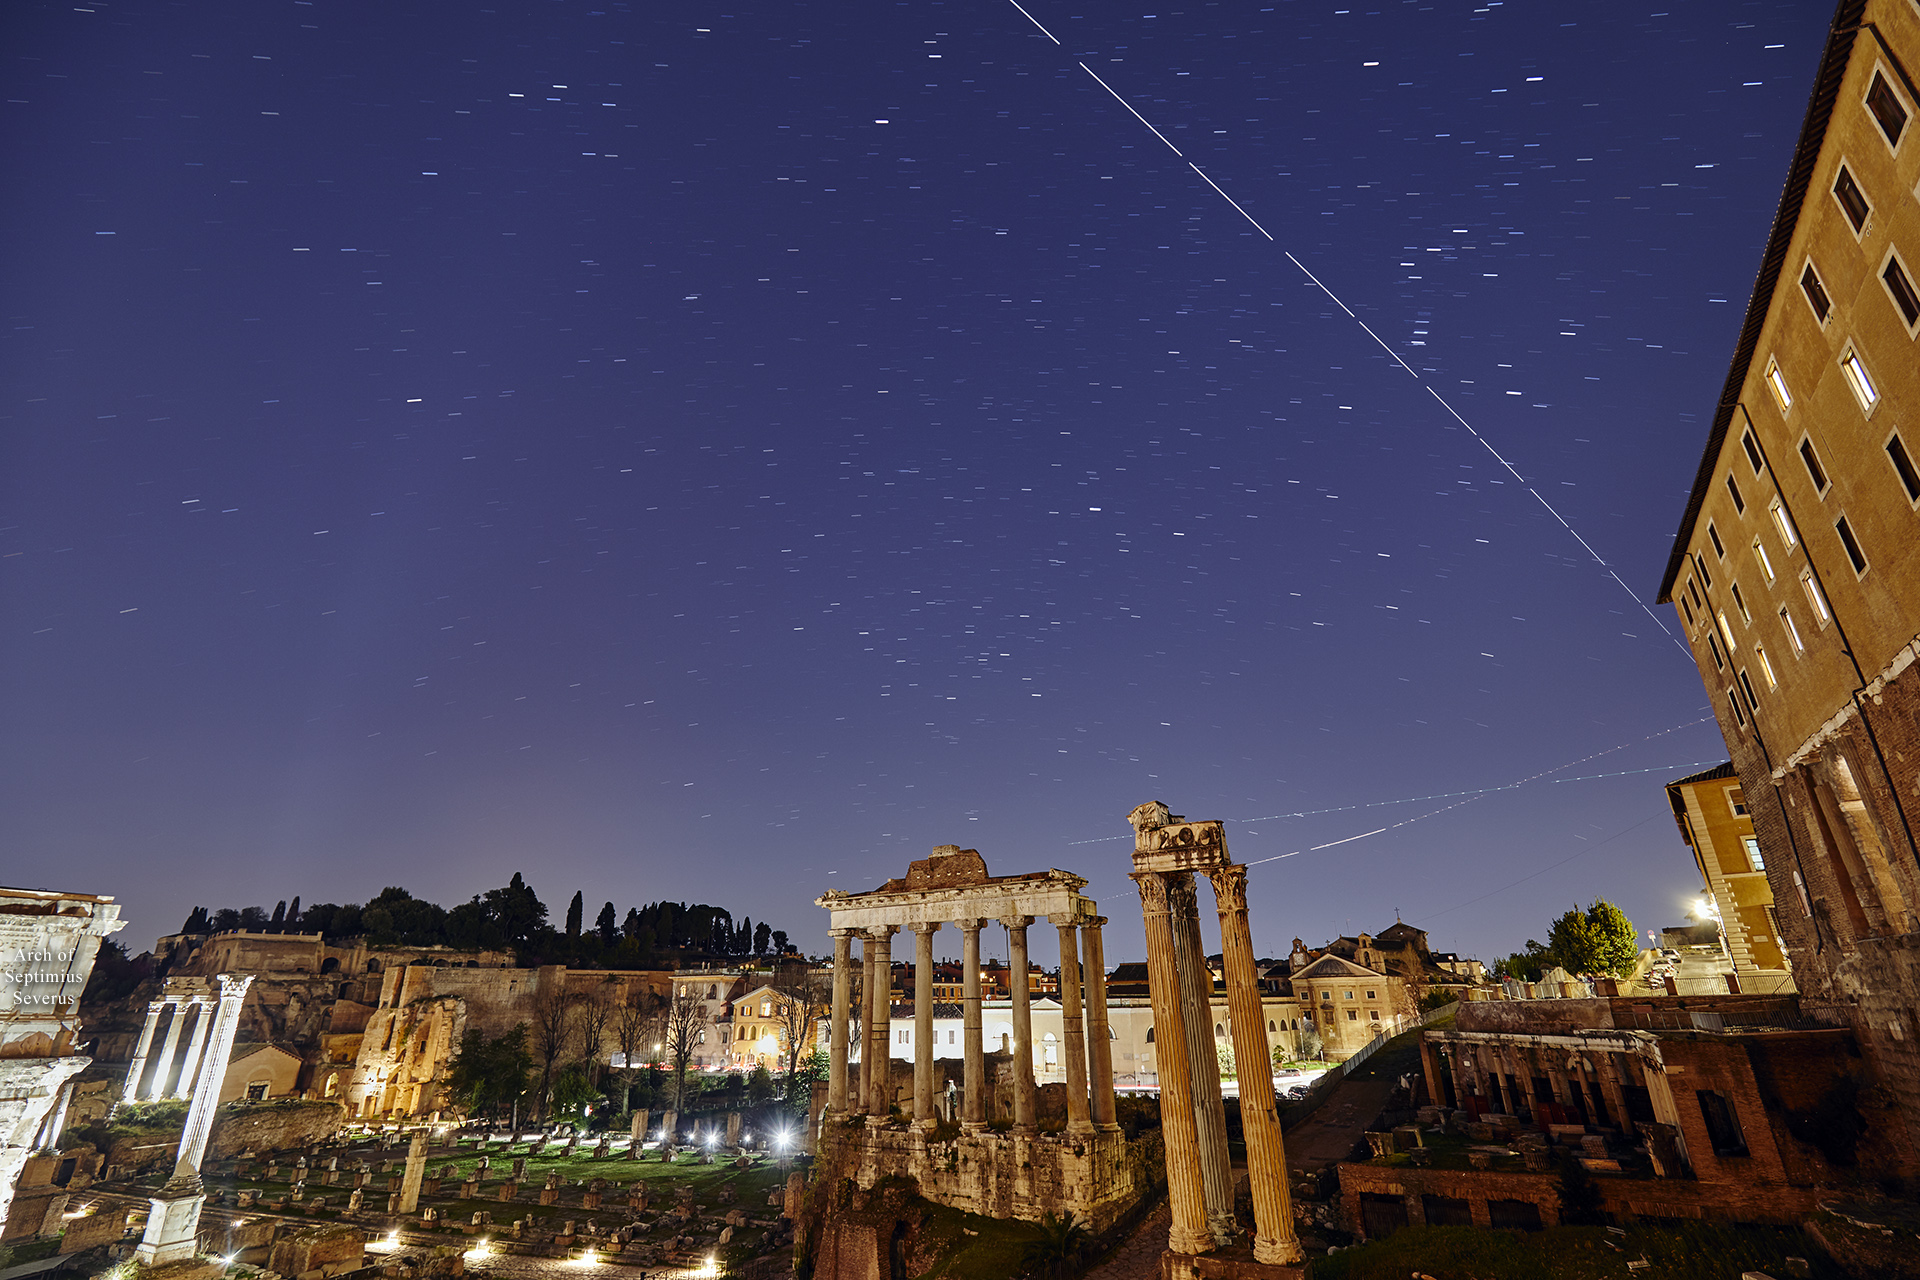 The International Space Station crosses the sky above the Roman Forum - 22 Mar. 2019